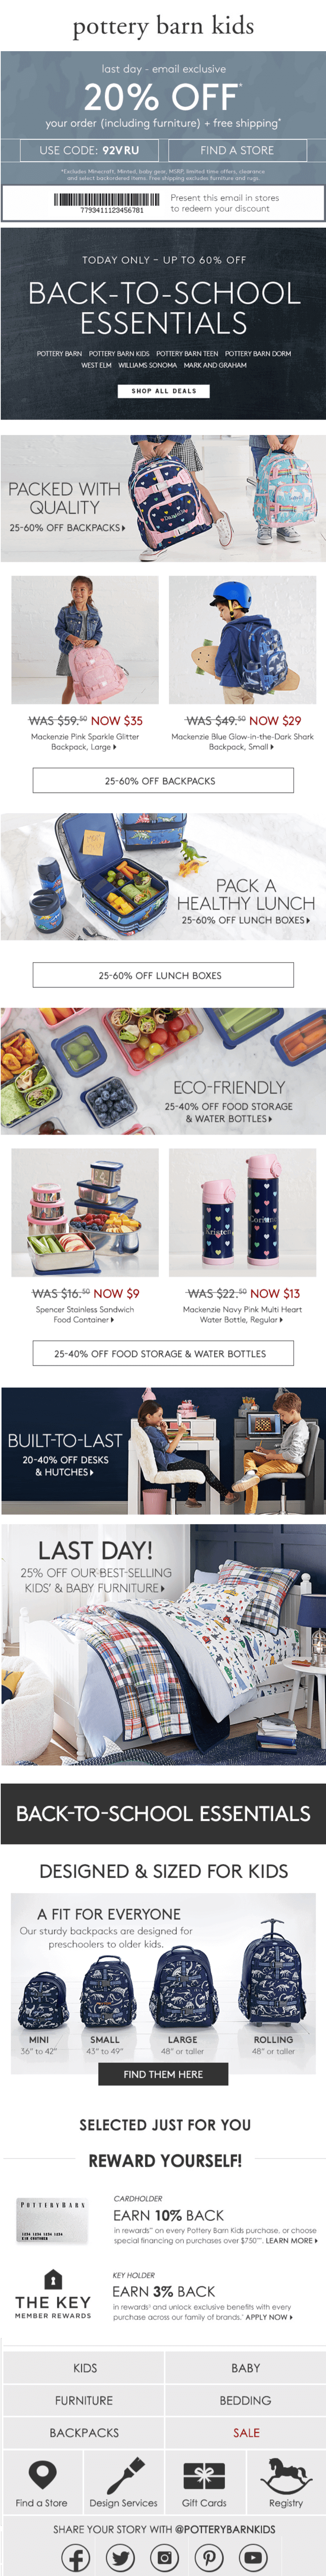 pottery-barn-kids-score-our-biggest-back-to-school-deals-up-to-60-off-today-only